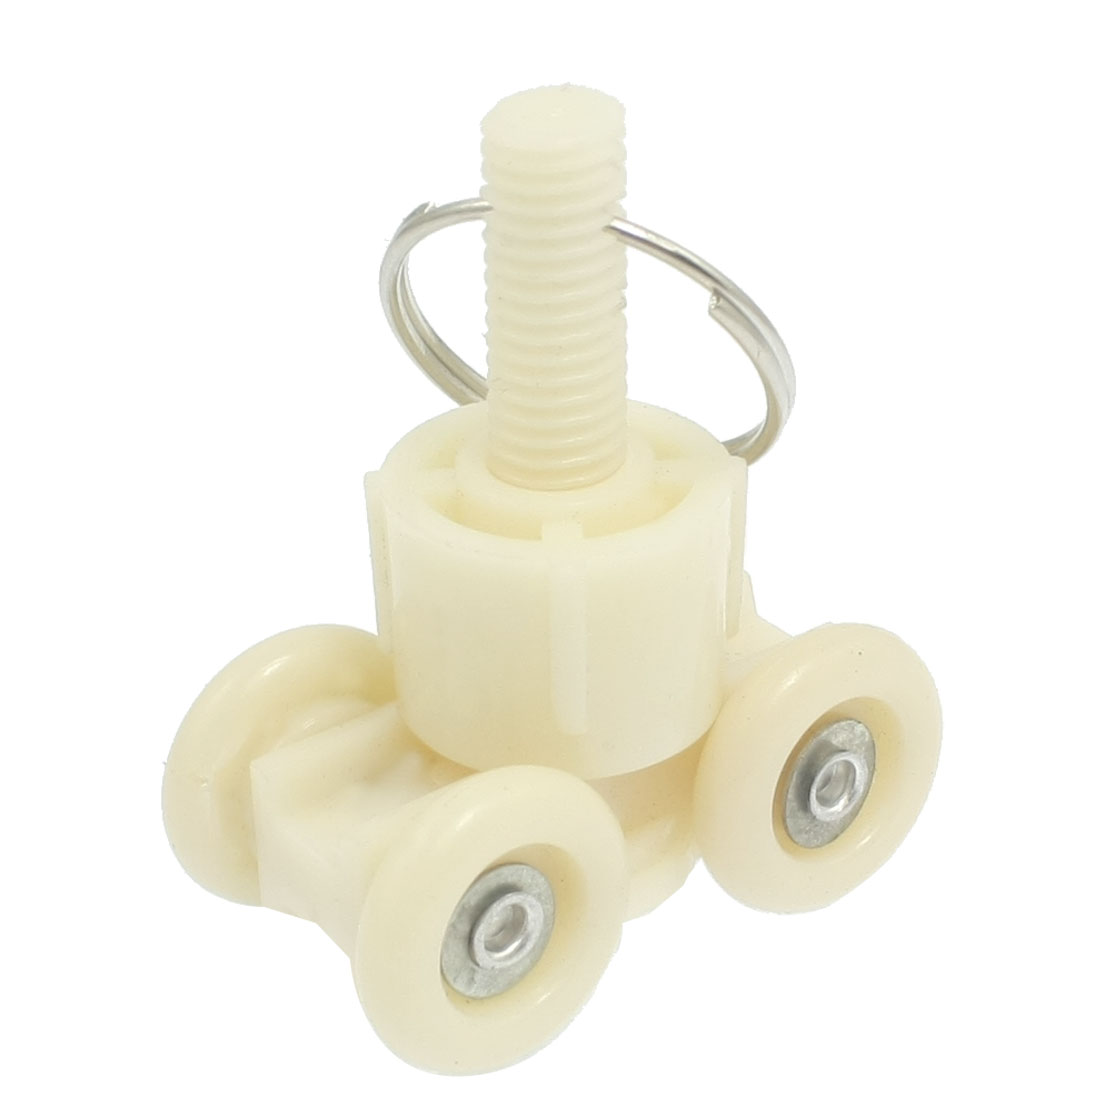 "Beige Nylon 0.7"" Diameter Four Wheels Sliding Door Roller Pulley"